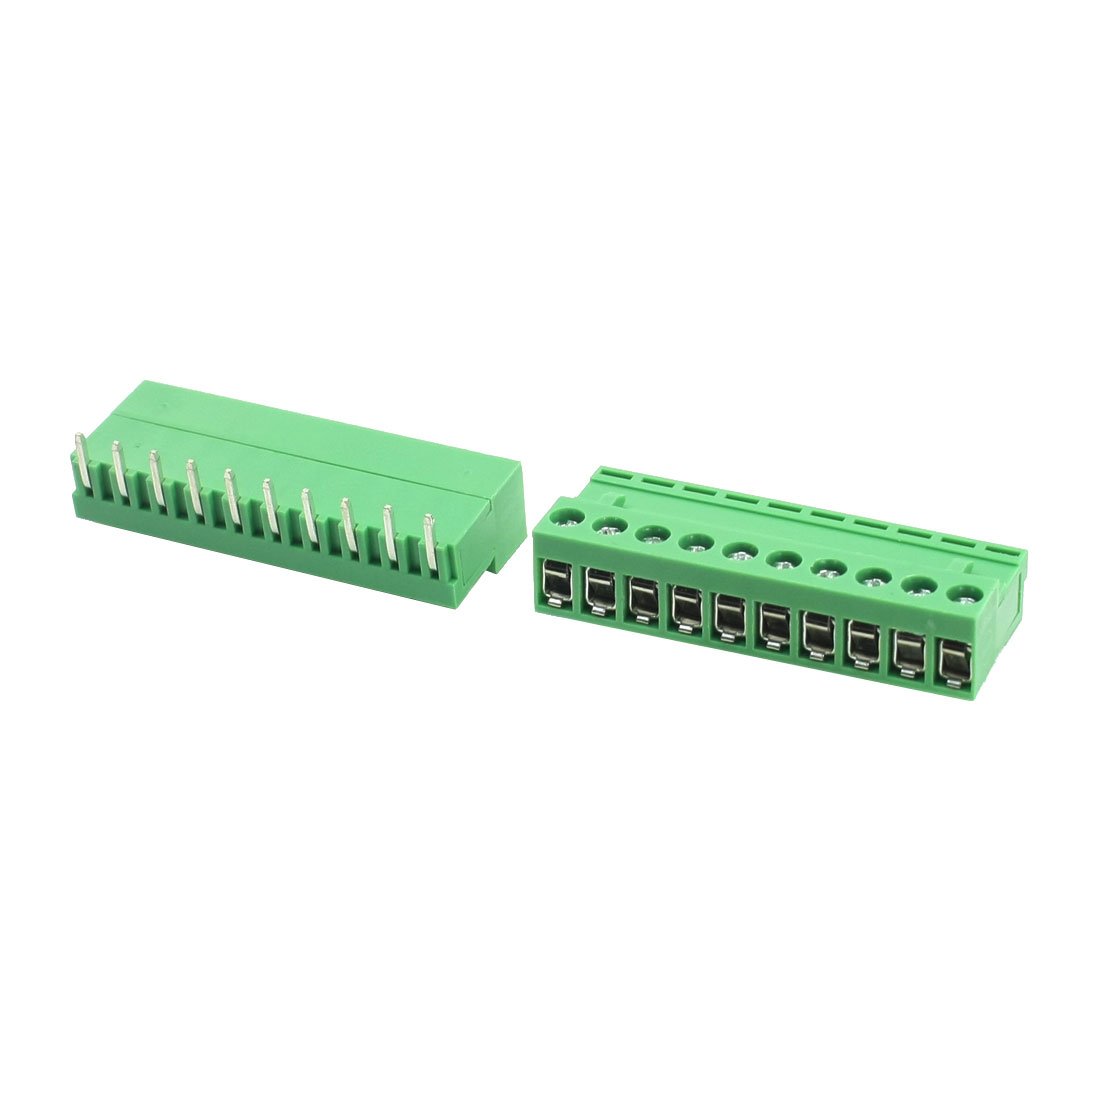 2Pcs AC300V 10A 5.08mm Spacing 10Pin Angled Pluggable Through Hole Mounting Green PCB Screw Terminal Barrier Block Connector